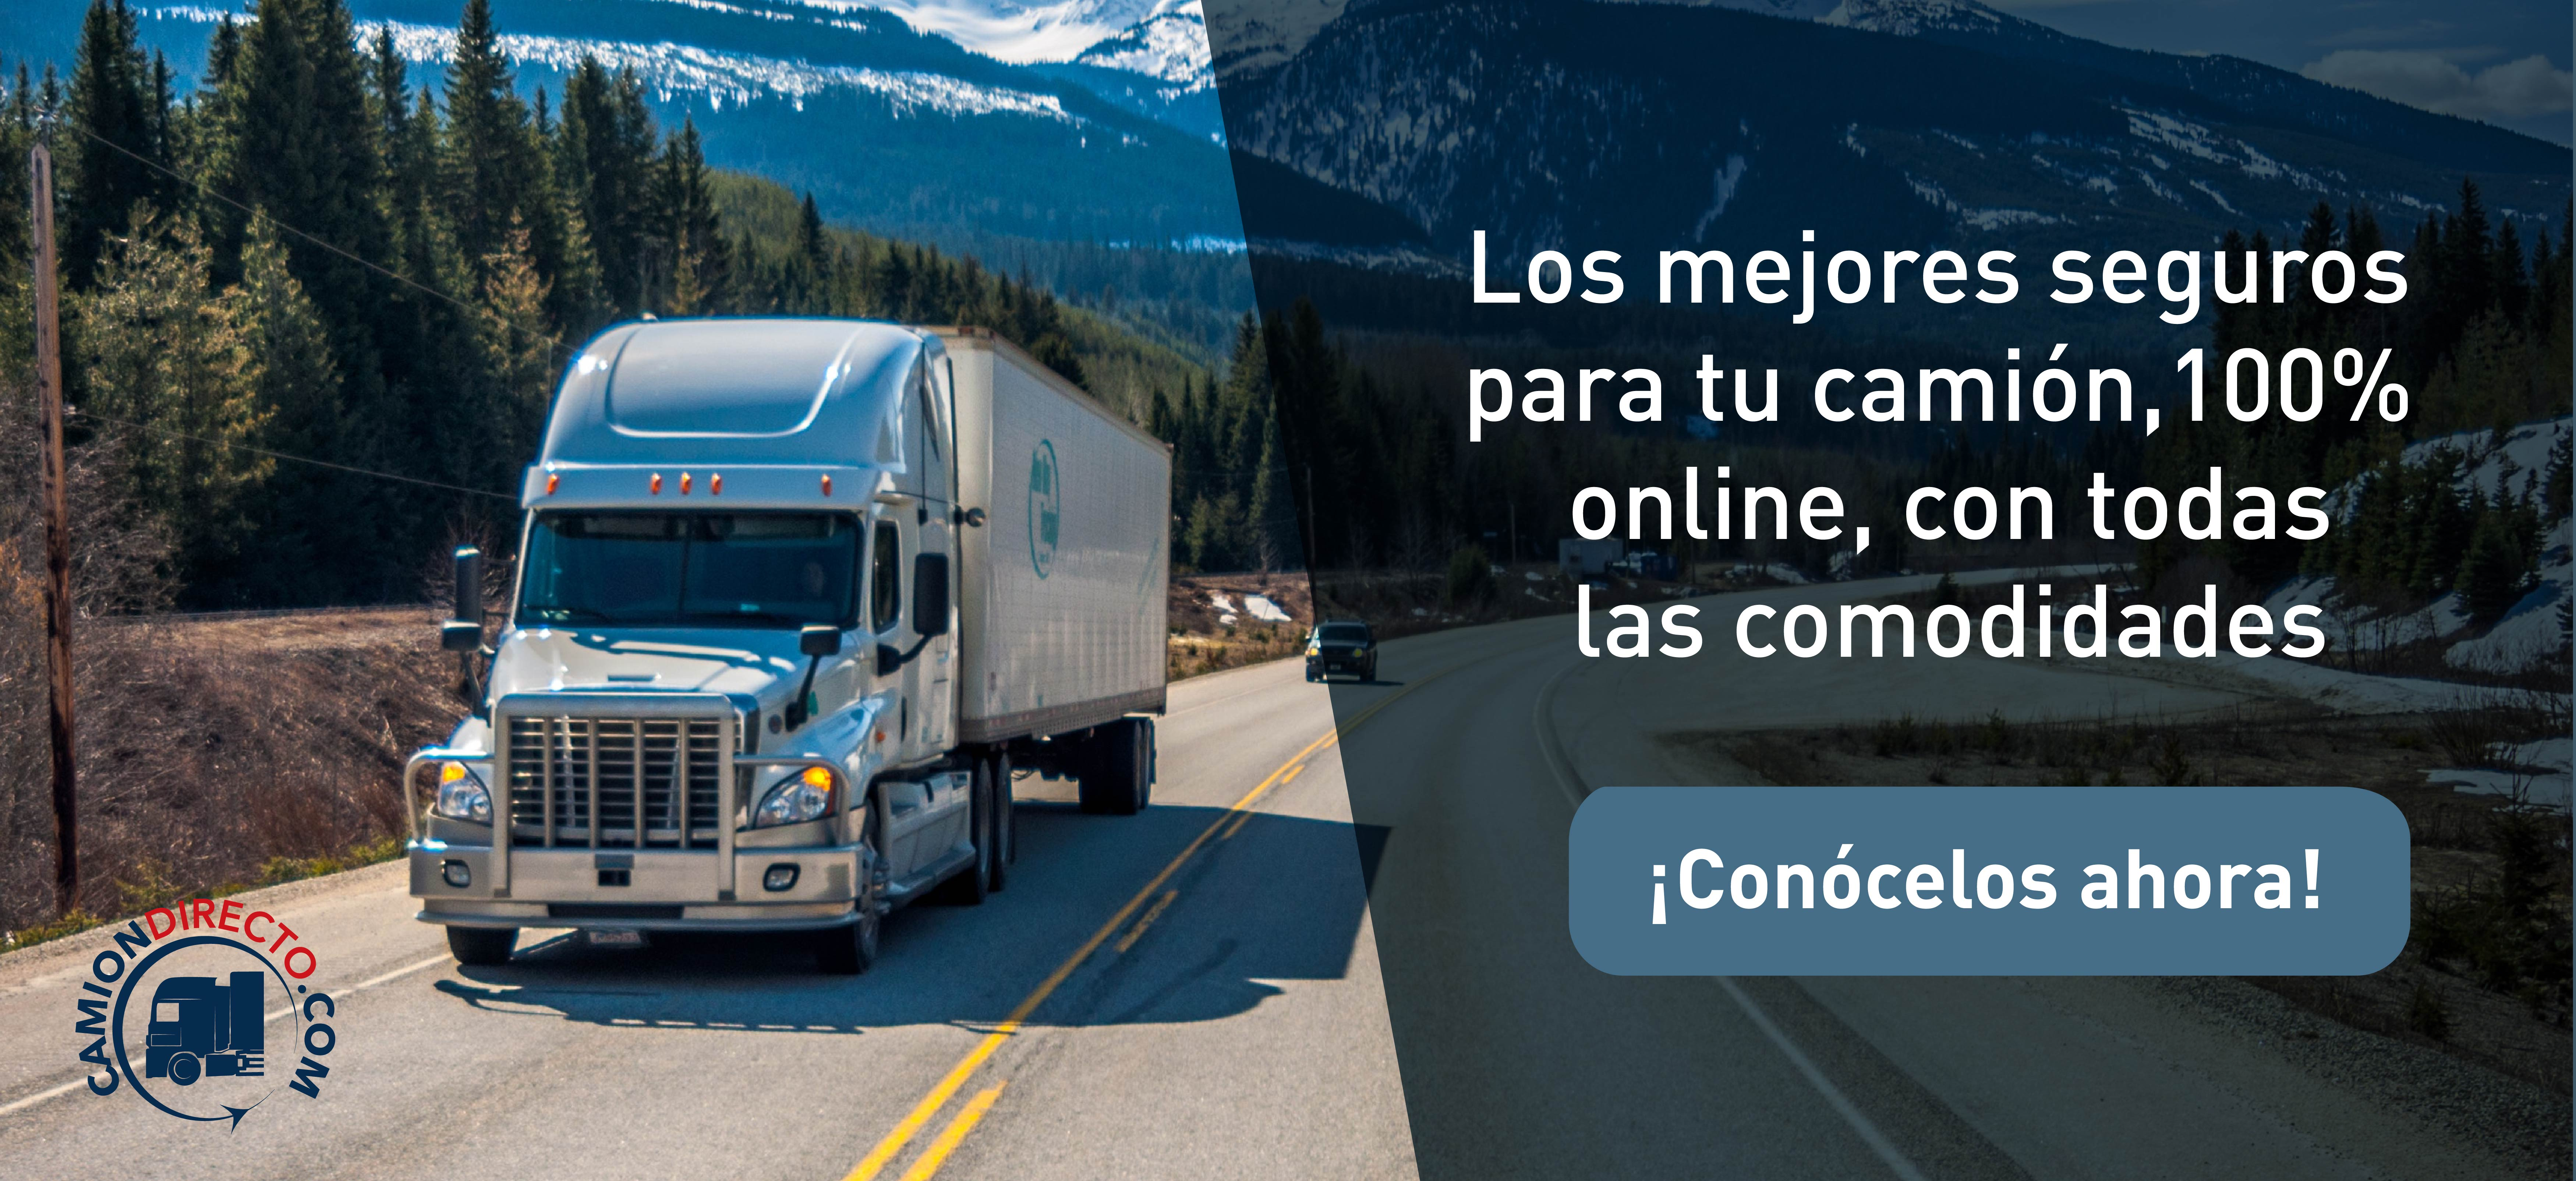 banners Camion Directo Abril